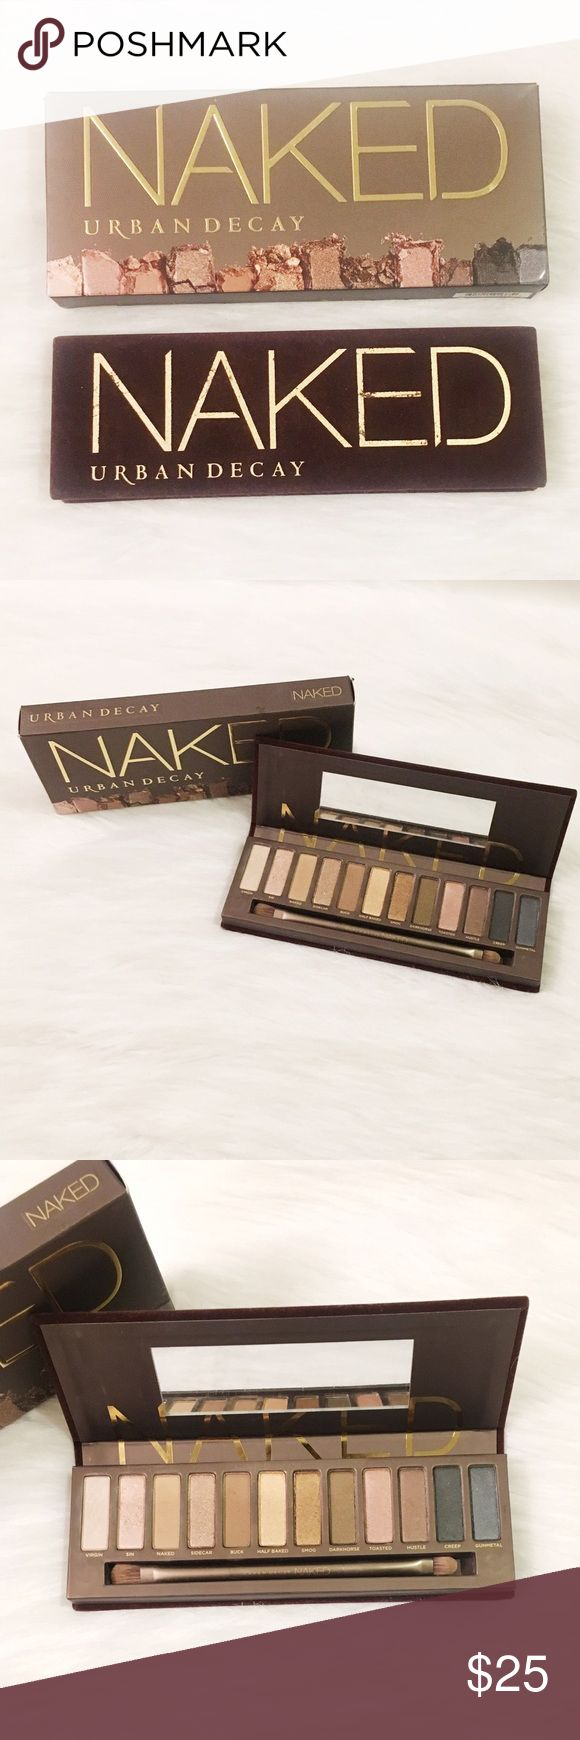 Urban Decay NAKED palette Very lightly used only a handful of times. I prefer more matte colors in my palettes, but these shimmery colors are GORGEOUS for the woman who knows how to do eye make up well ☺️ still have he box it came in and will ship with the box and of course an additional gift 🎁 💕 Urban Decay Makeup Eyeshadow